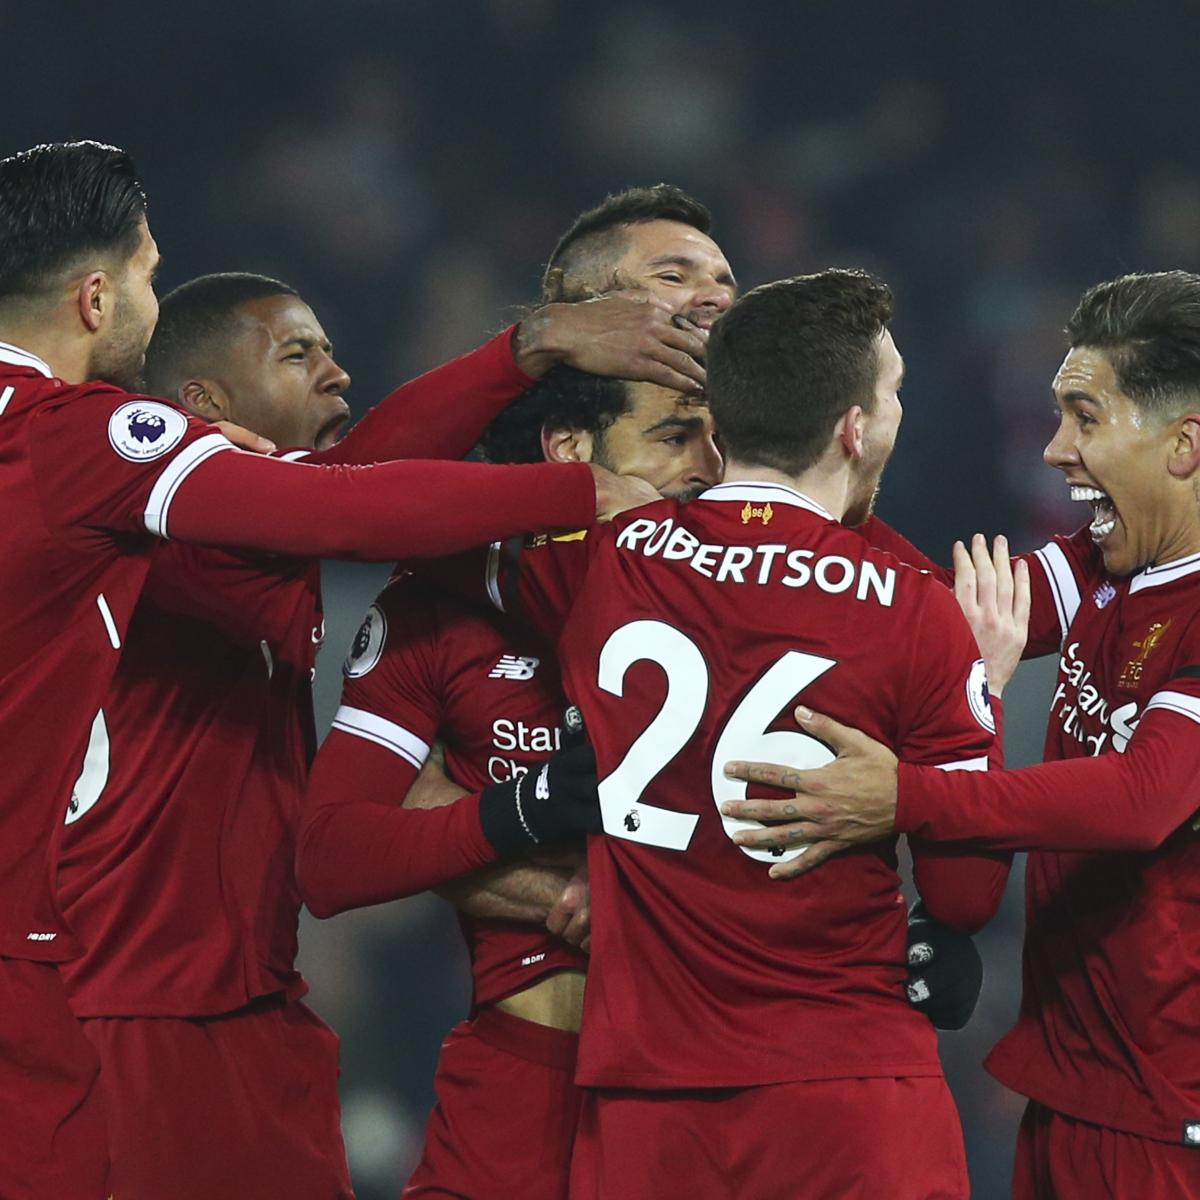 Live Streaming Soccer News Liverpool Vs Benfica Live: Porto Vs. Liverpool: Preview, Live Stream, TV Info For UCL